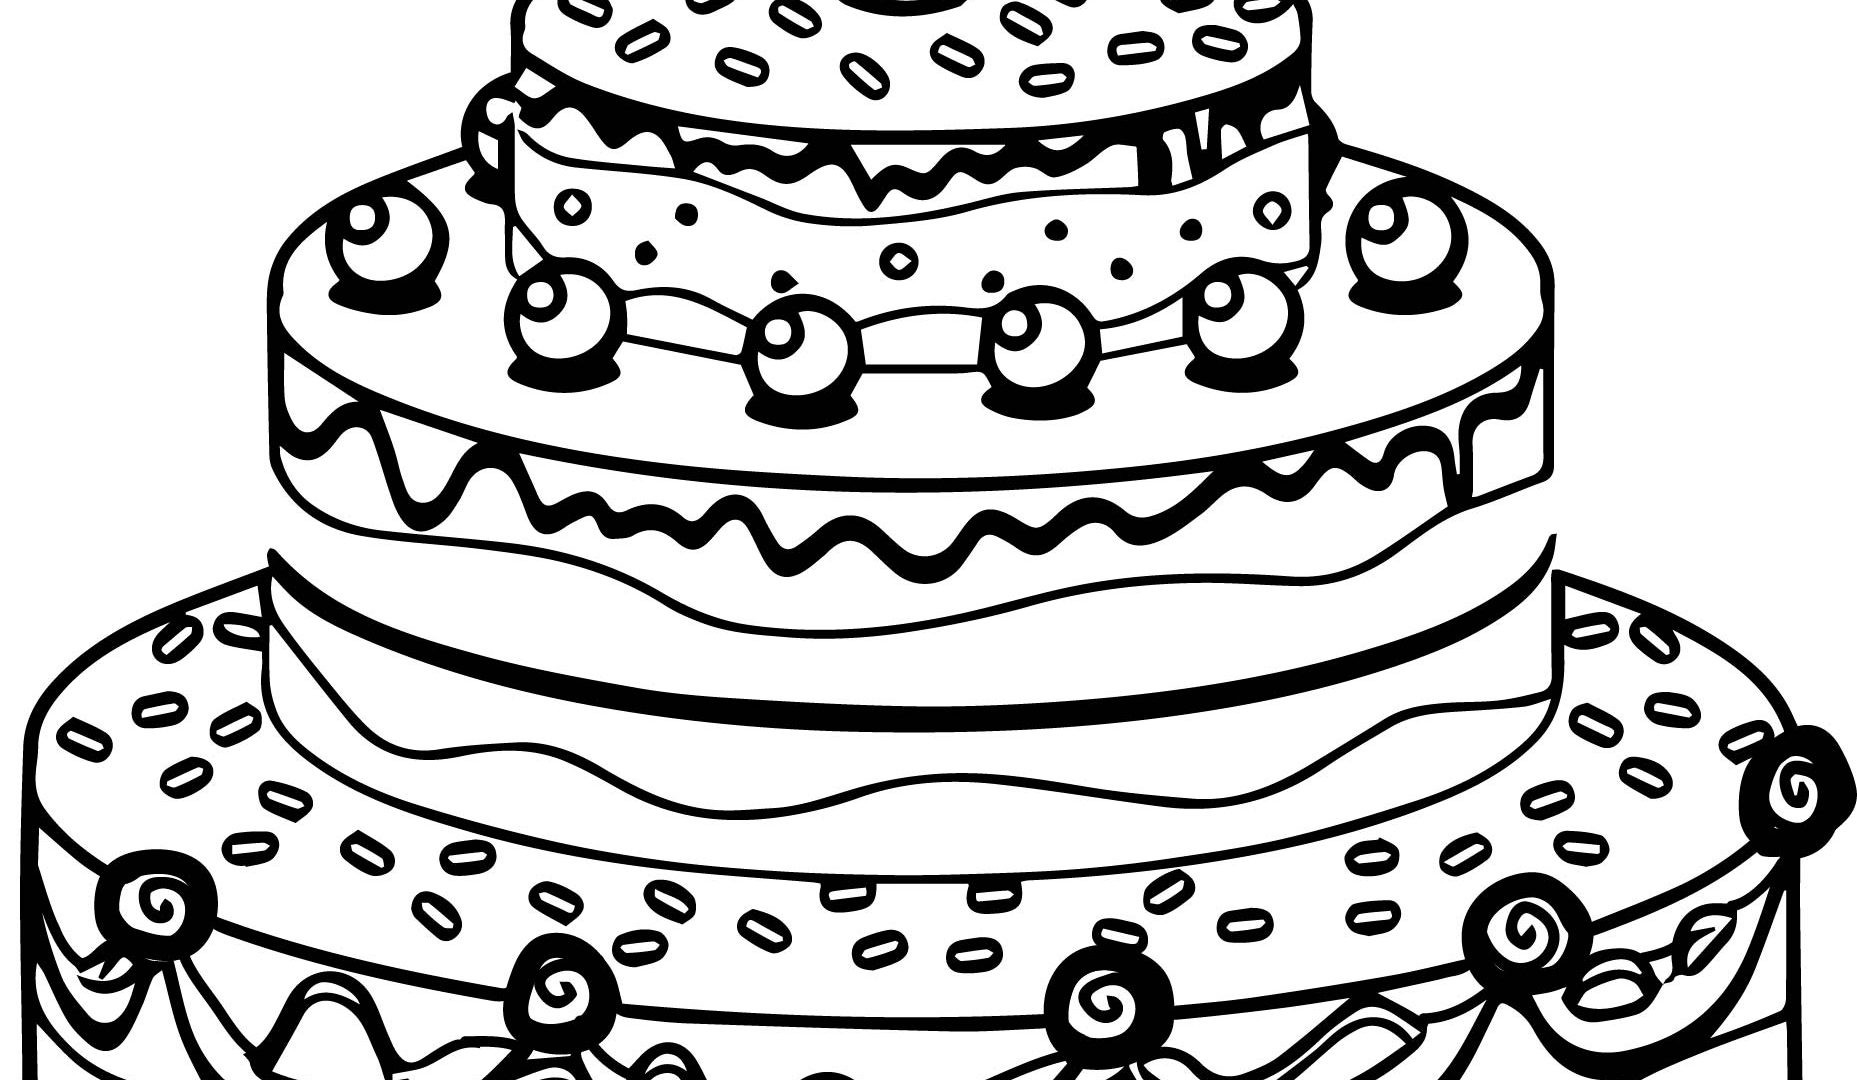 simple birthday party drawings ; happy-birthday-party-drawing-luxury-free-coloring-pages-birthday-cake-best-cake-happy-birthday-of-happy-birthday-party-drawing